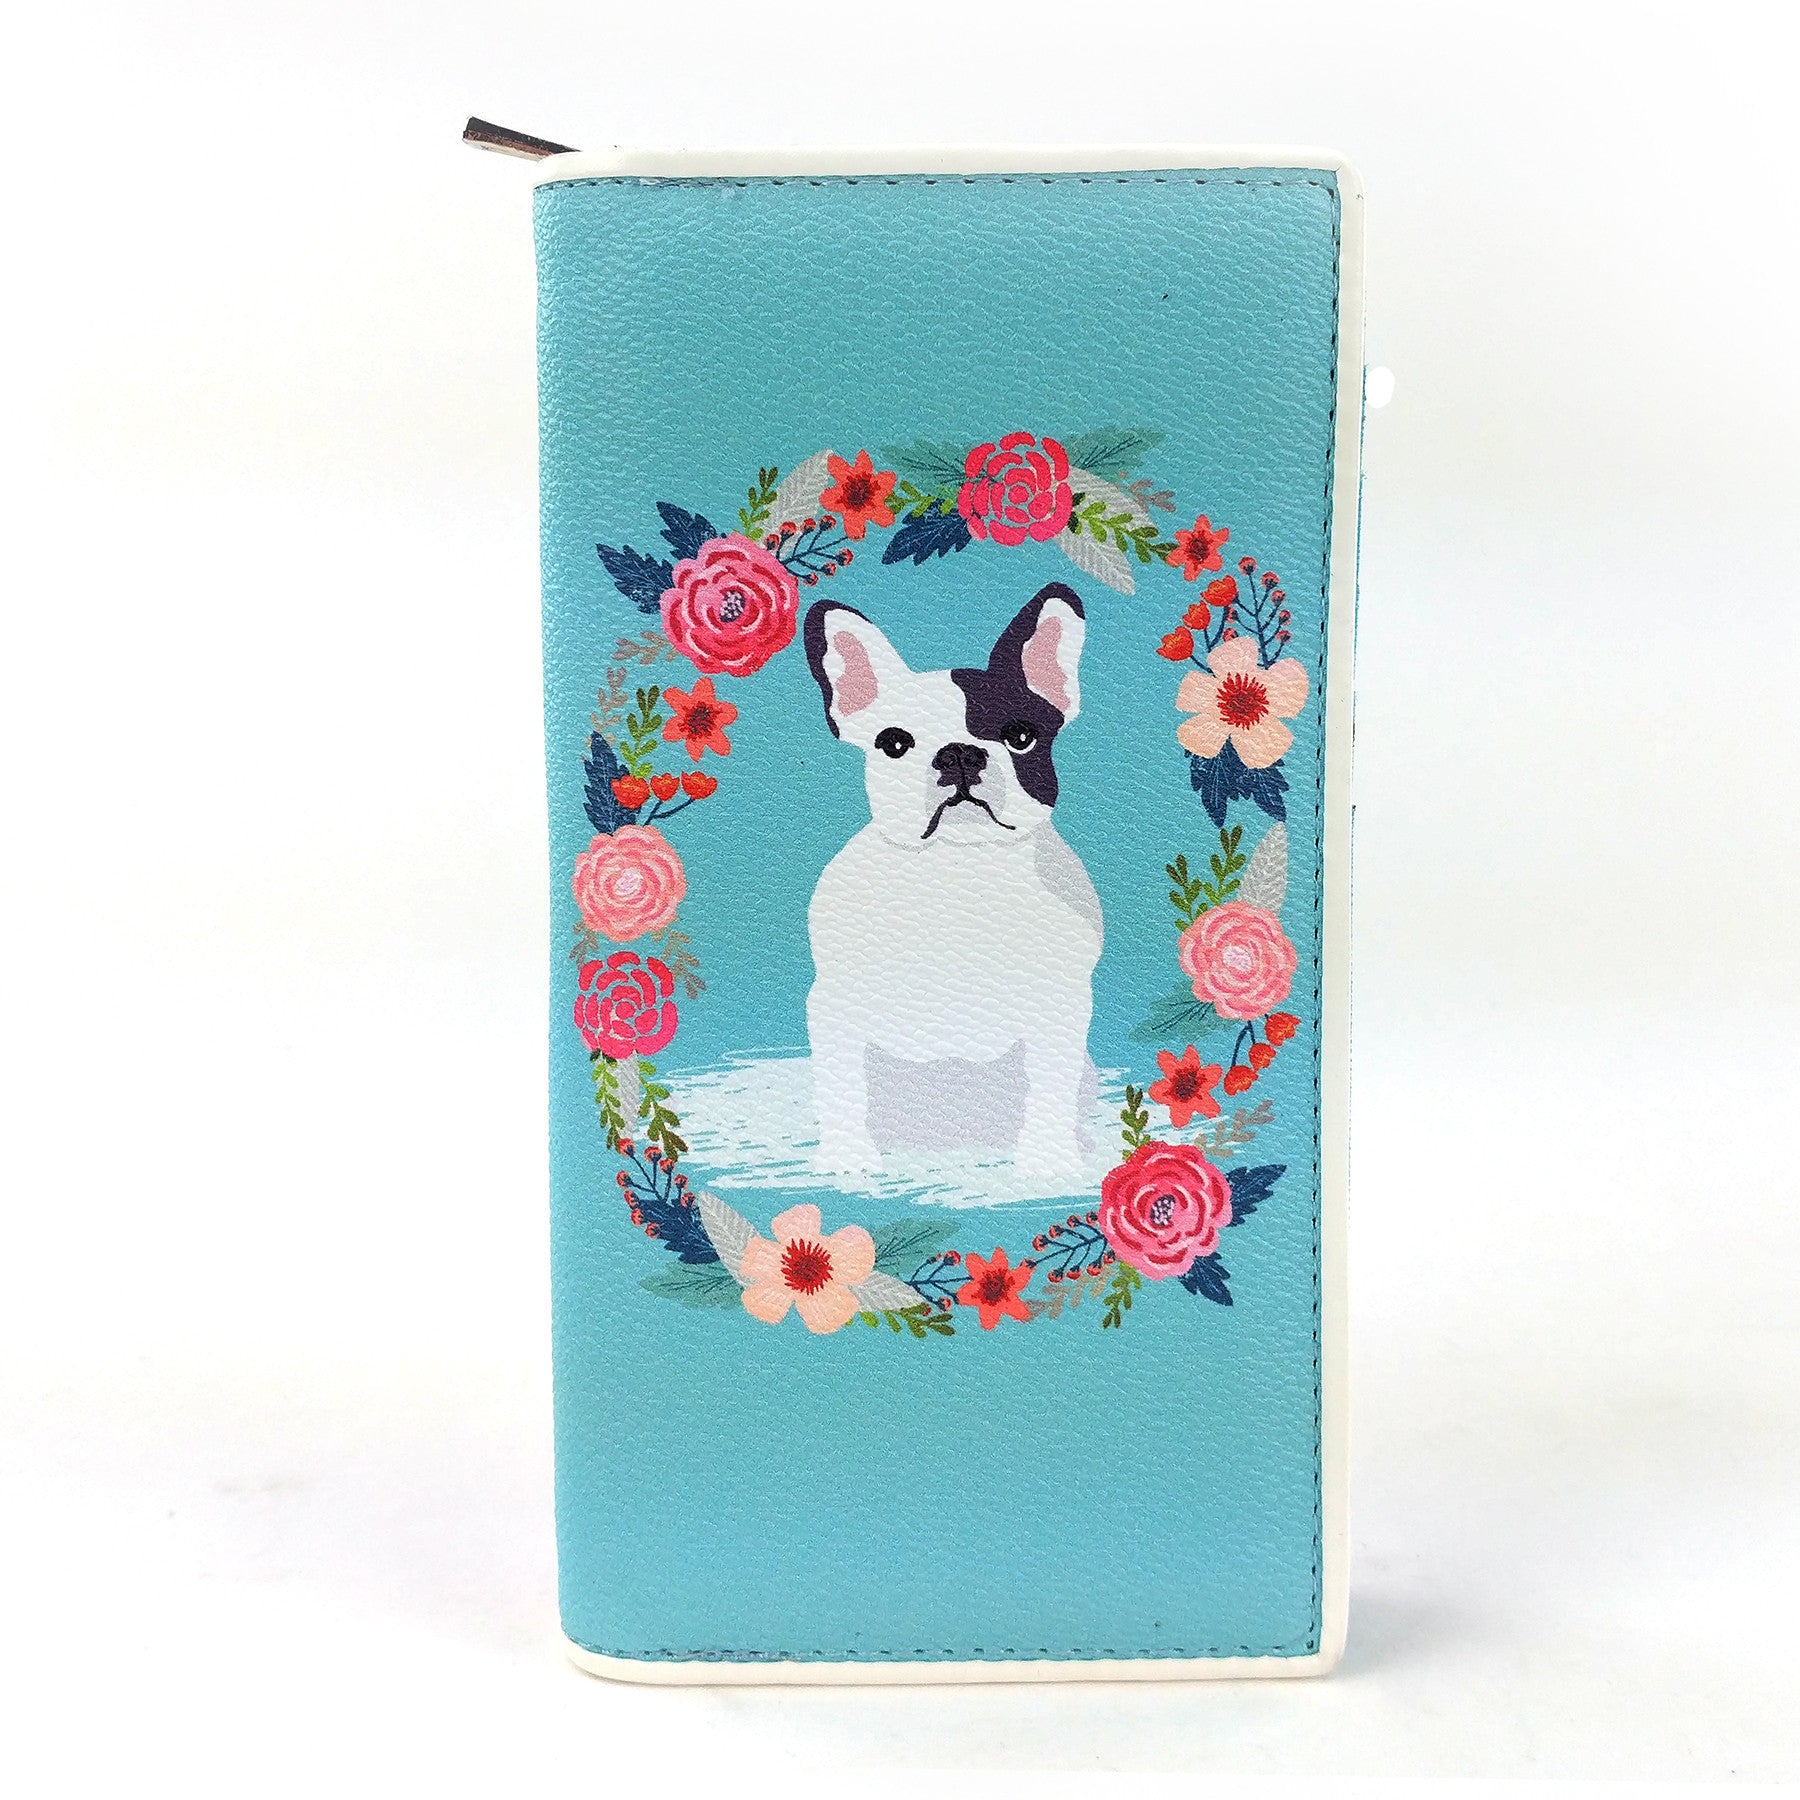 Floral French Bulldog Wallet in Vinyl Material